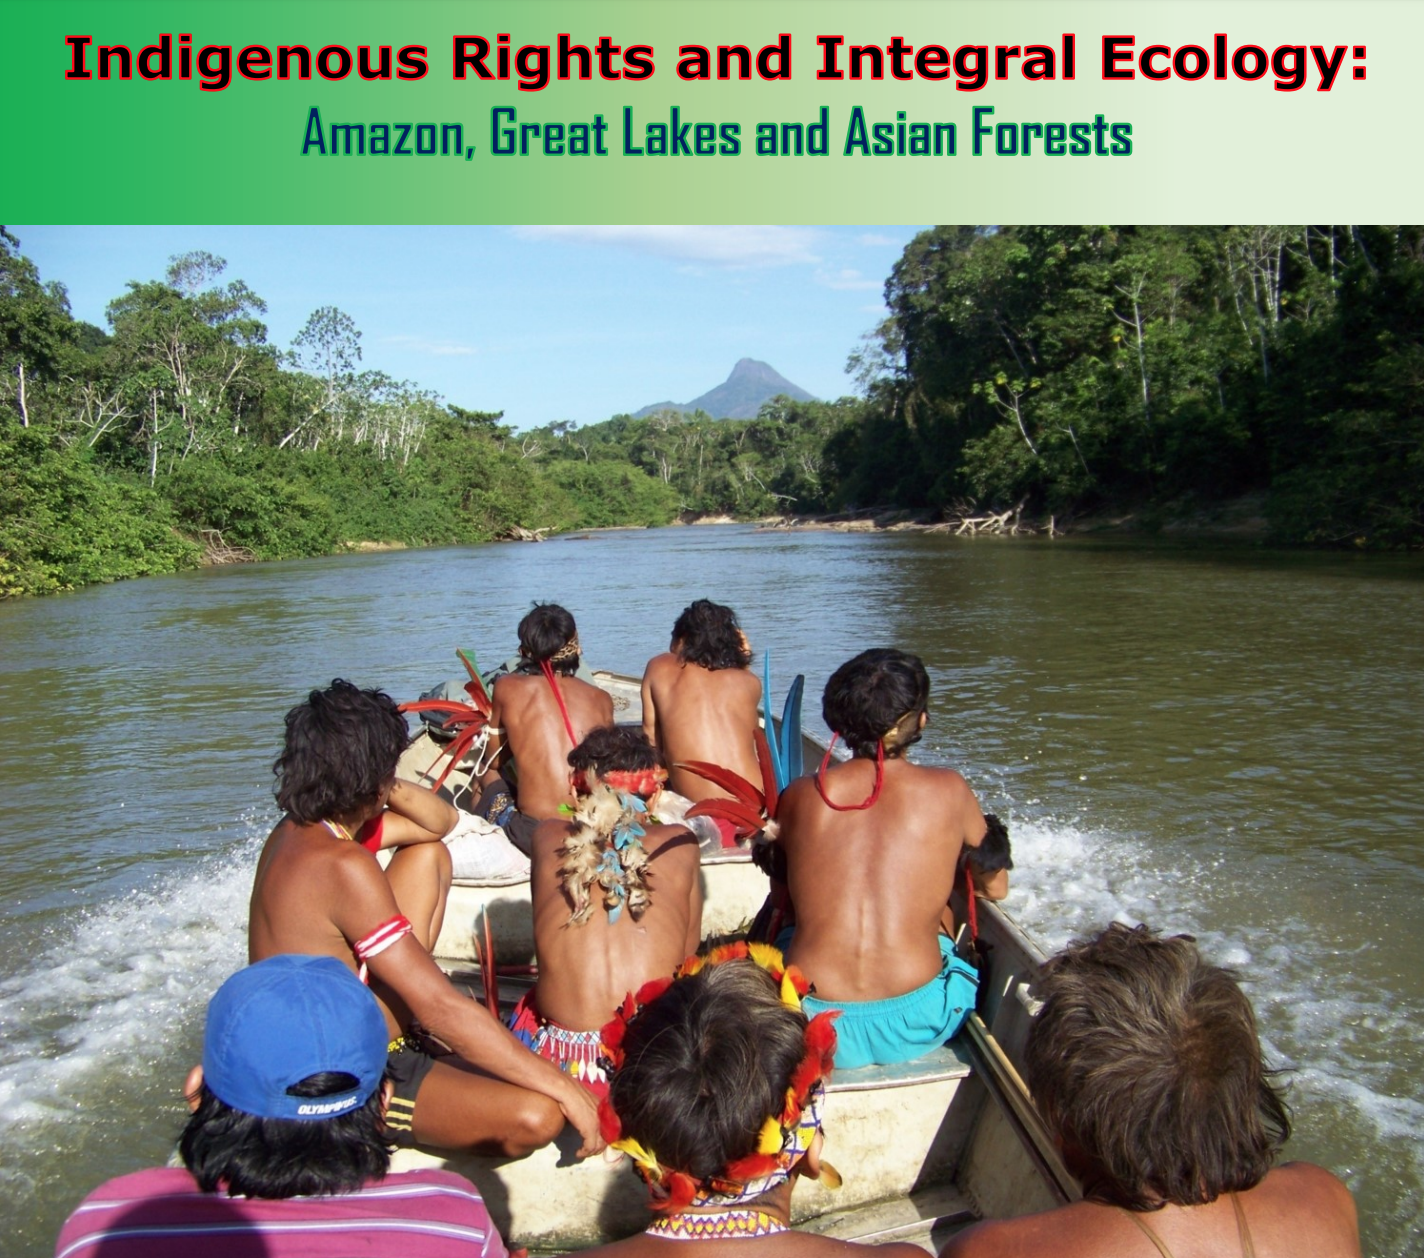 Indigenous rights and integral ecology